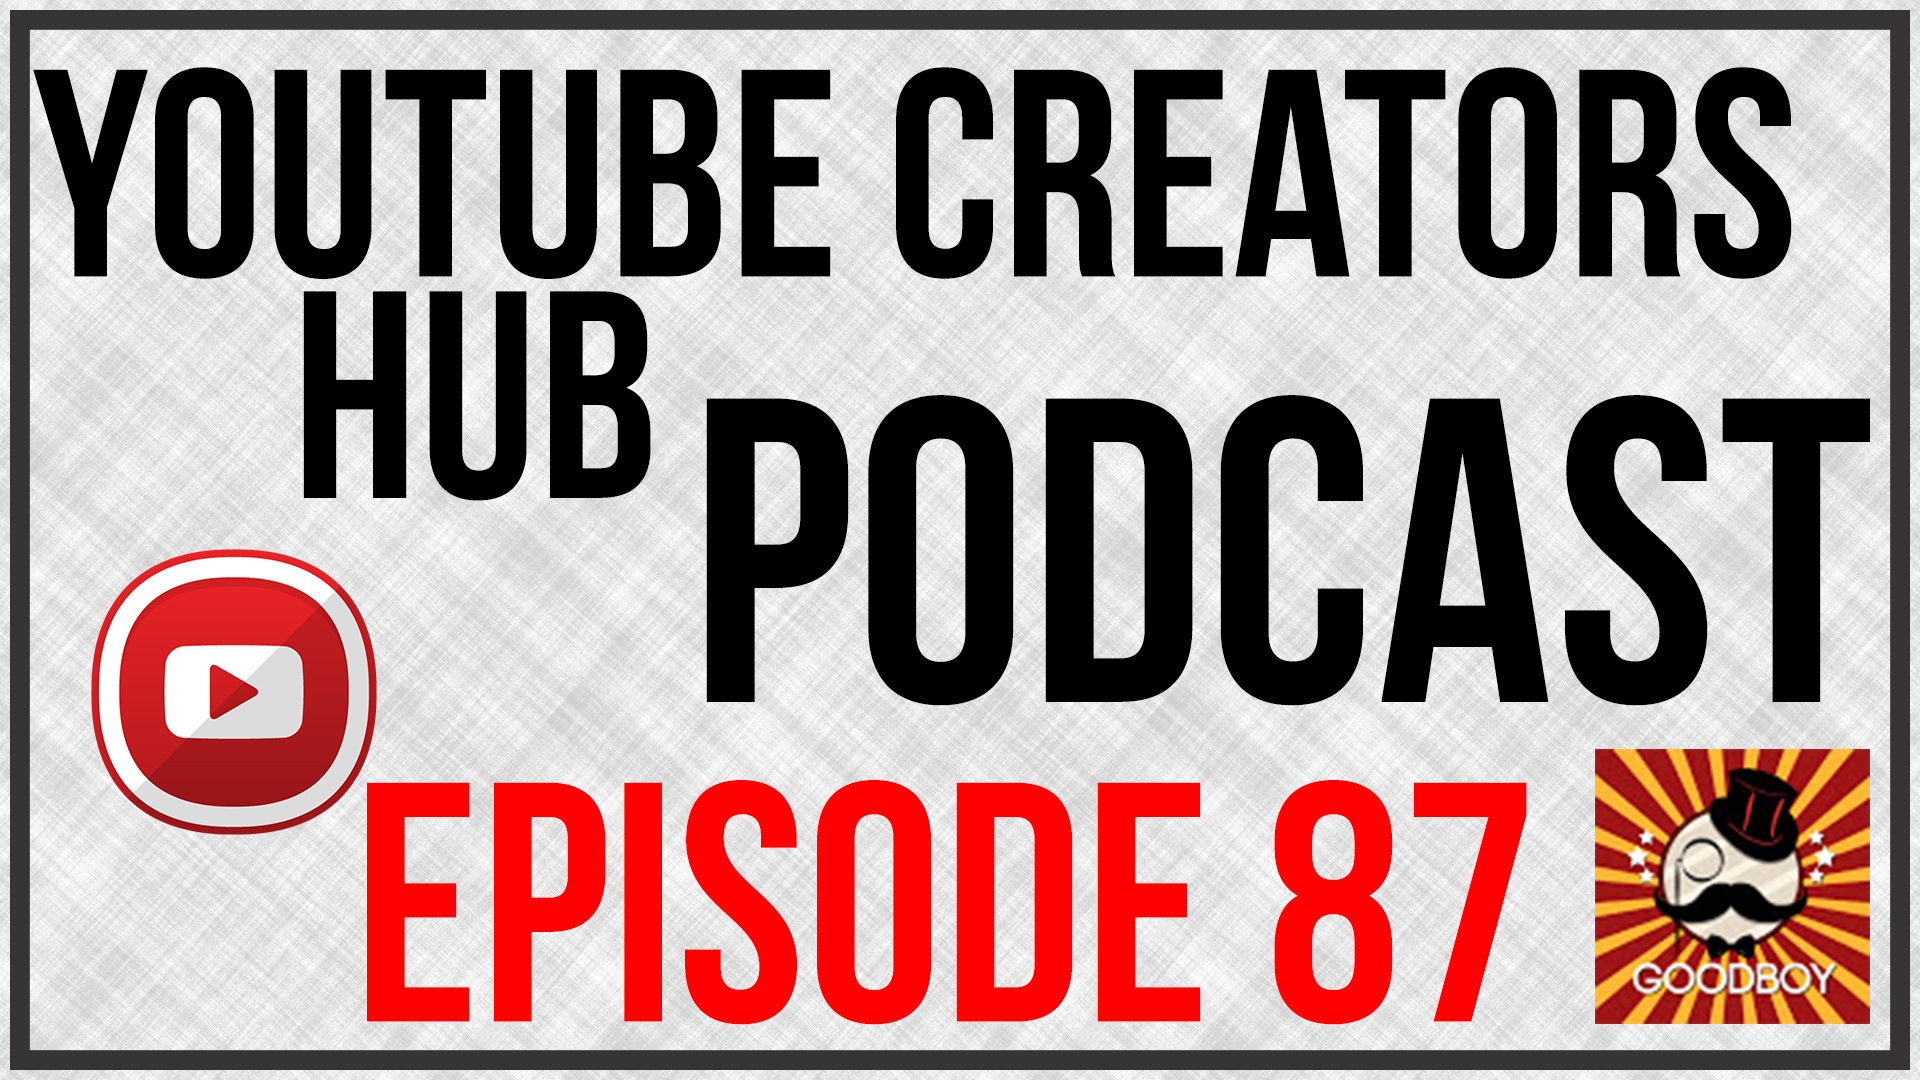 YouTube Creators Hub Podcast Episode 87